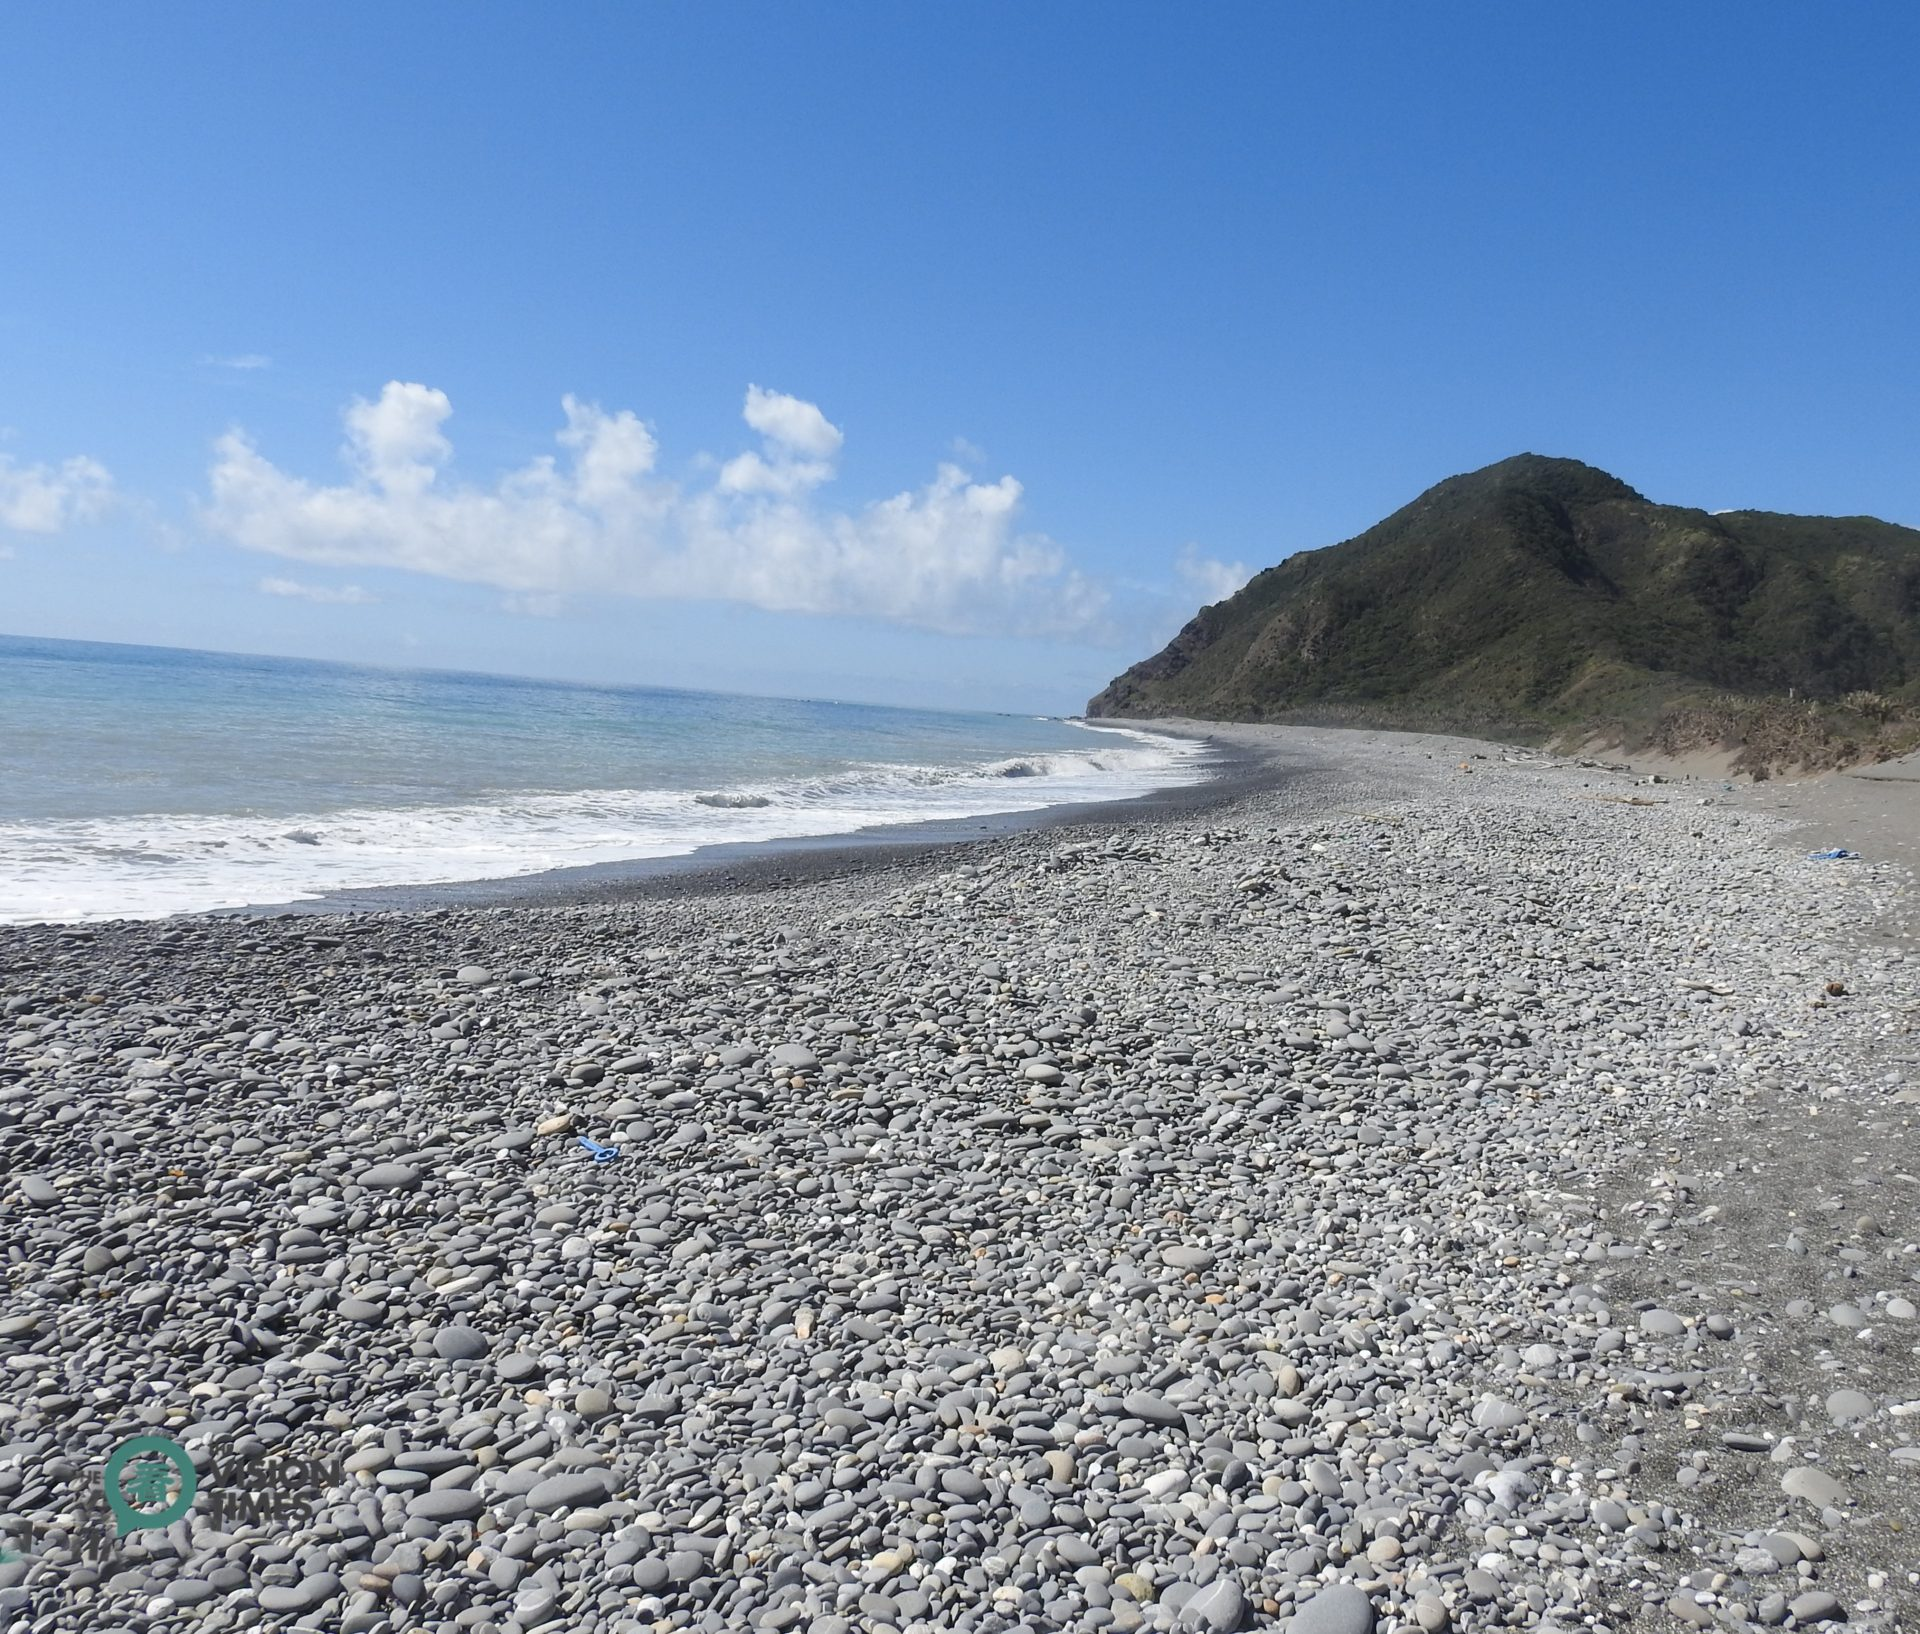 The seashore along Alangyi Ancient Trail is full of smooth and rounded pebbles. (Image: Billy Shyu / Vision Times)